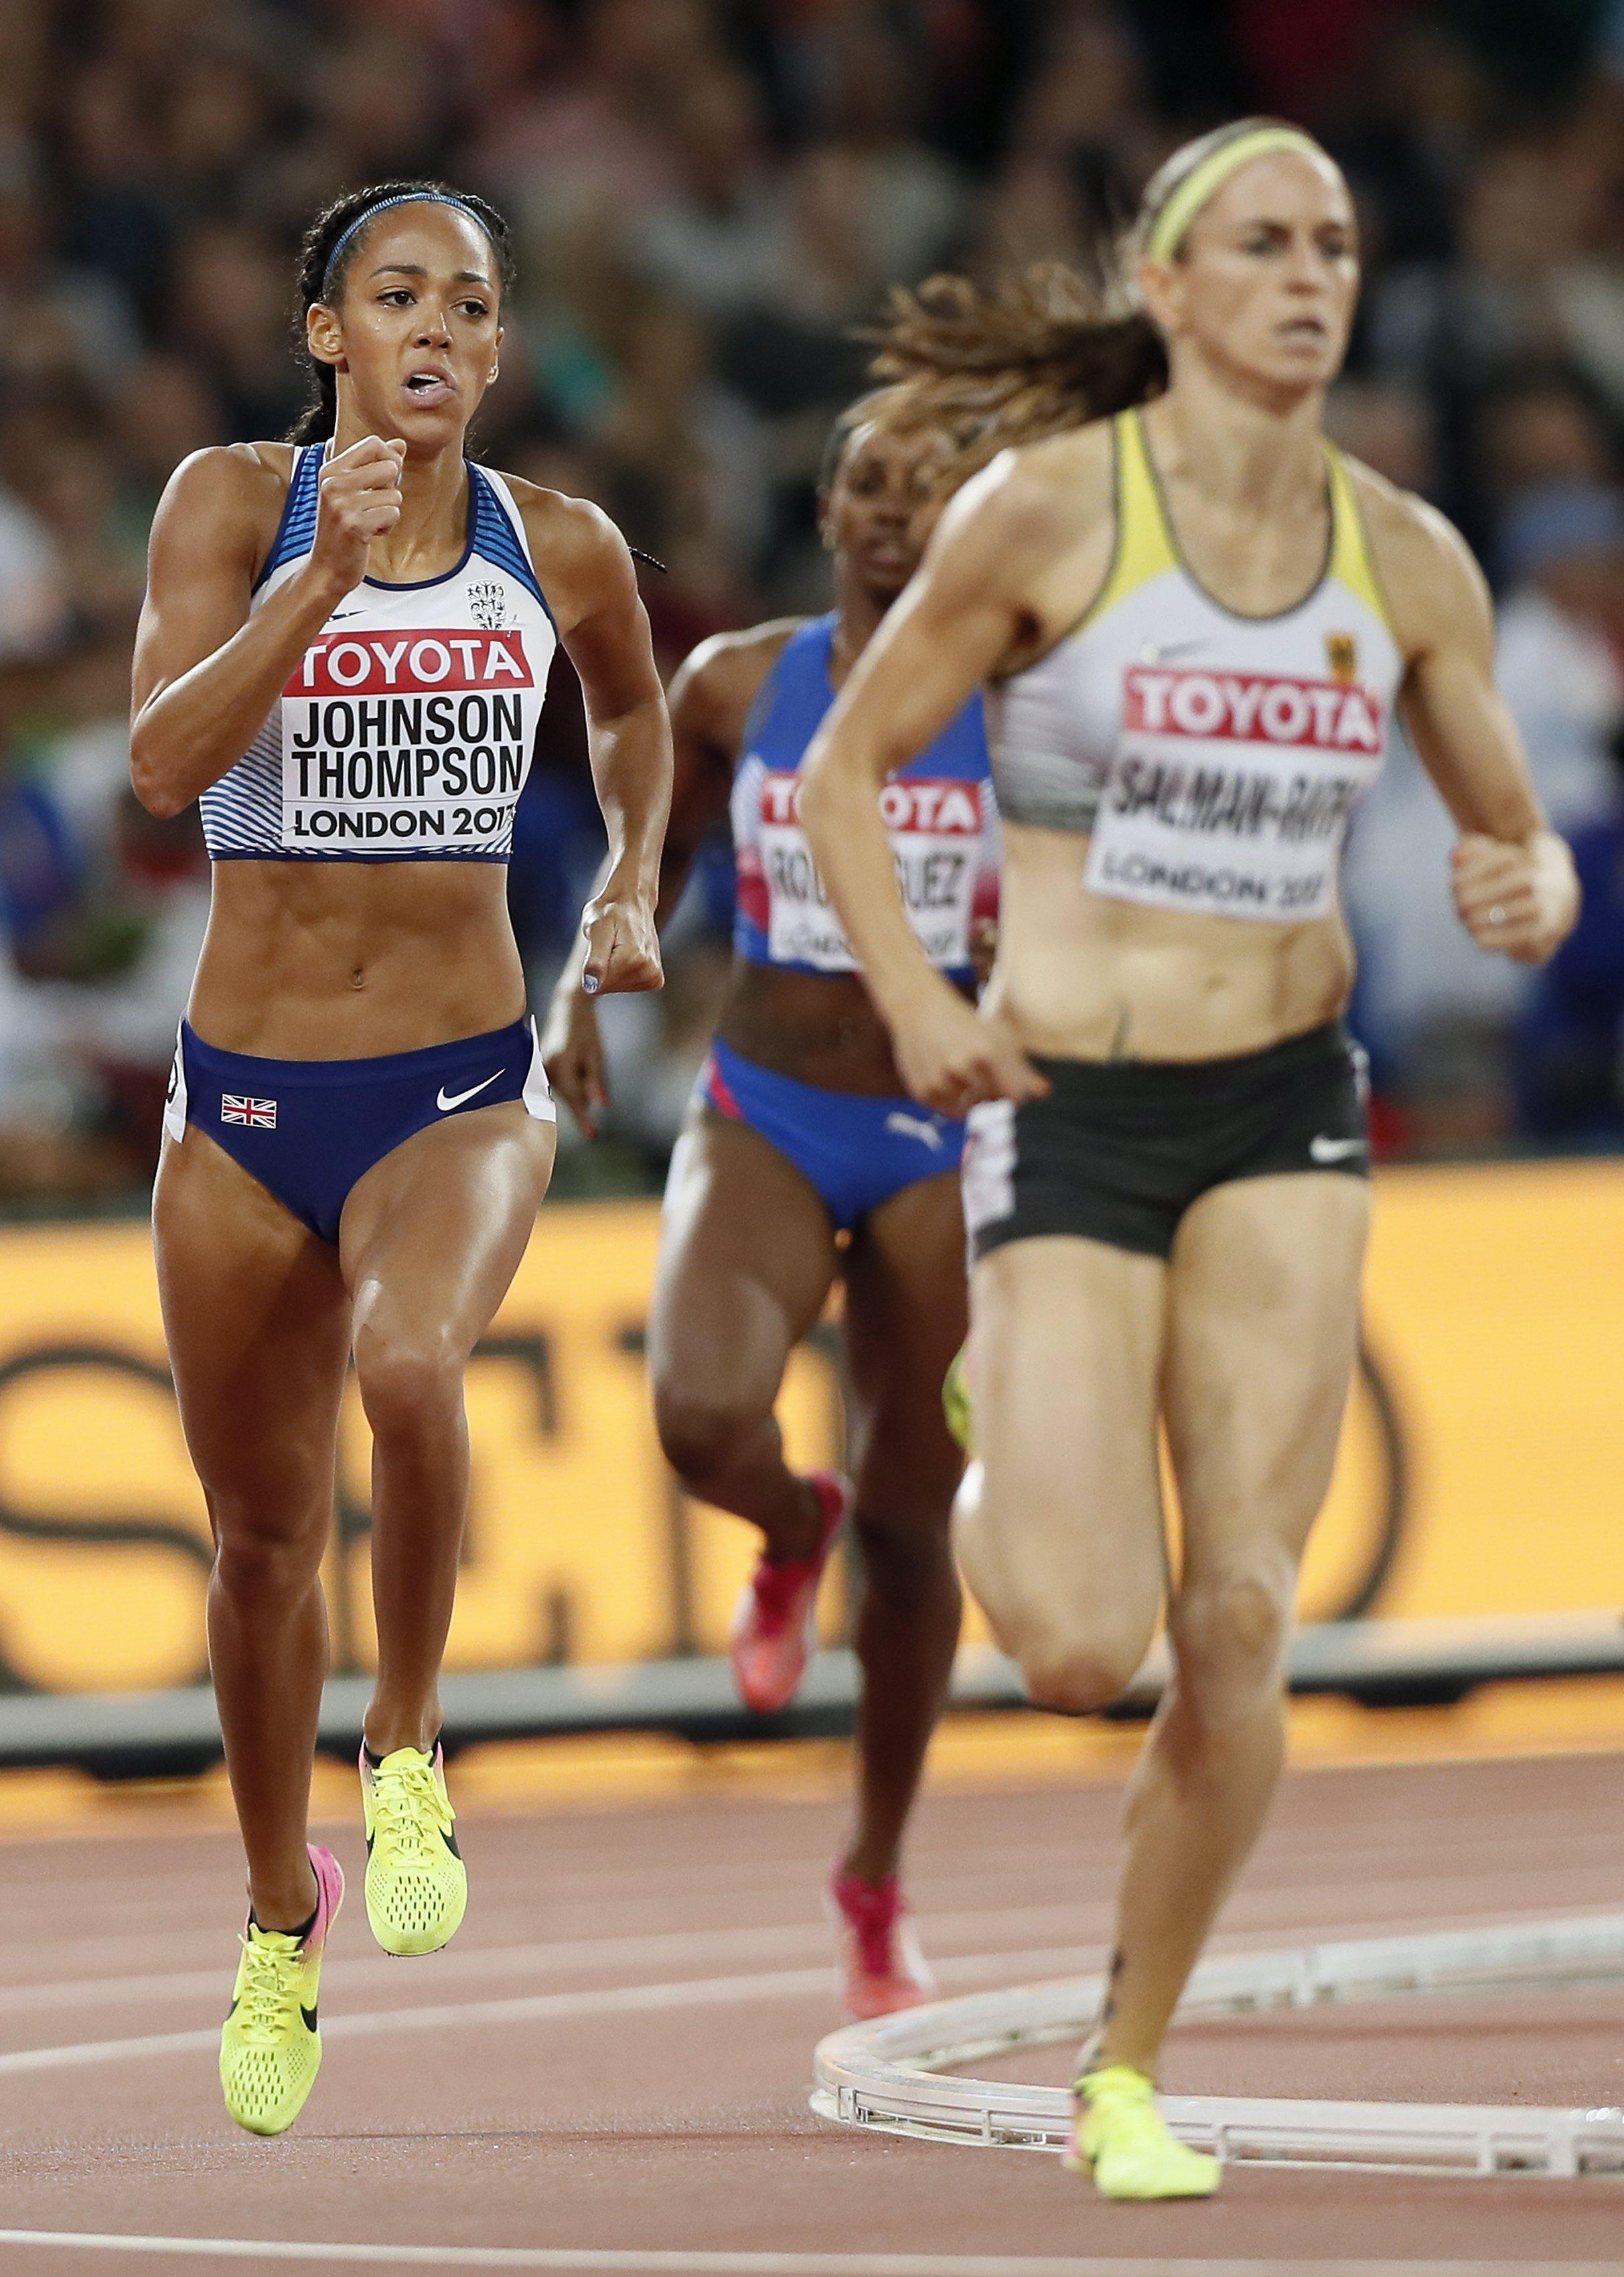 Johnson-Thompson ran a season's best in the 800metres but it sill wasn't enough